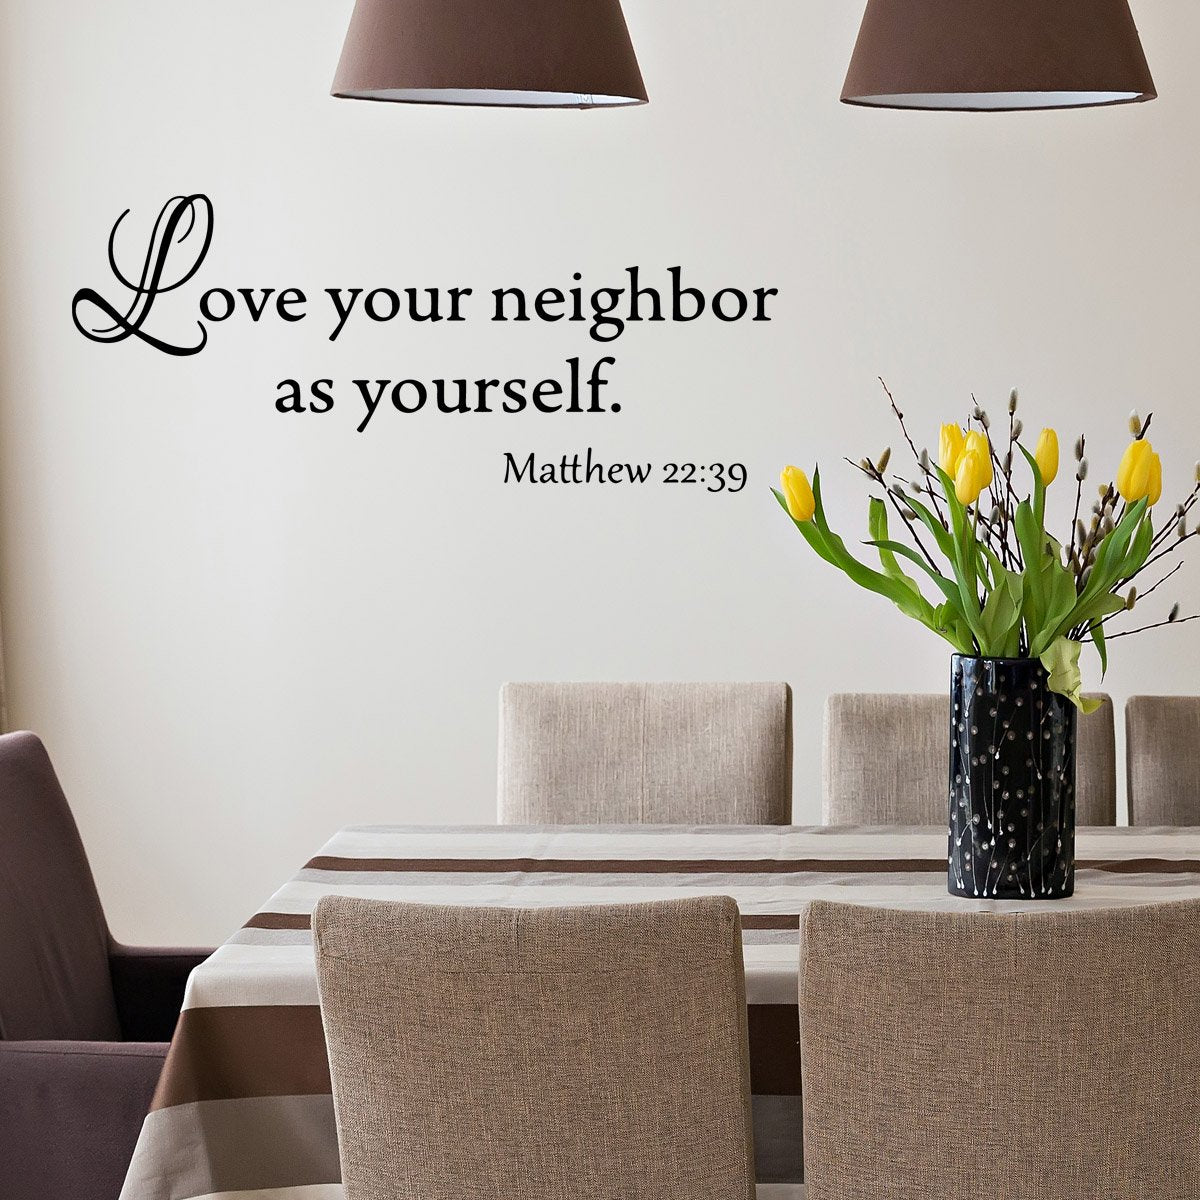 VWAQ Love Your Neighbor As Yourself Matthew 22:39 Bible Wall Decal - VWAQ Vinyl Wall Art Quotes and Prints